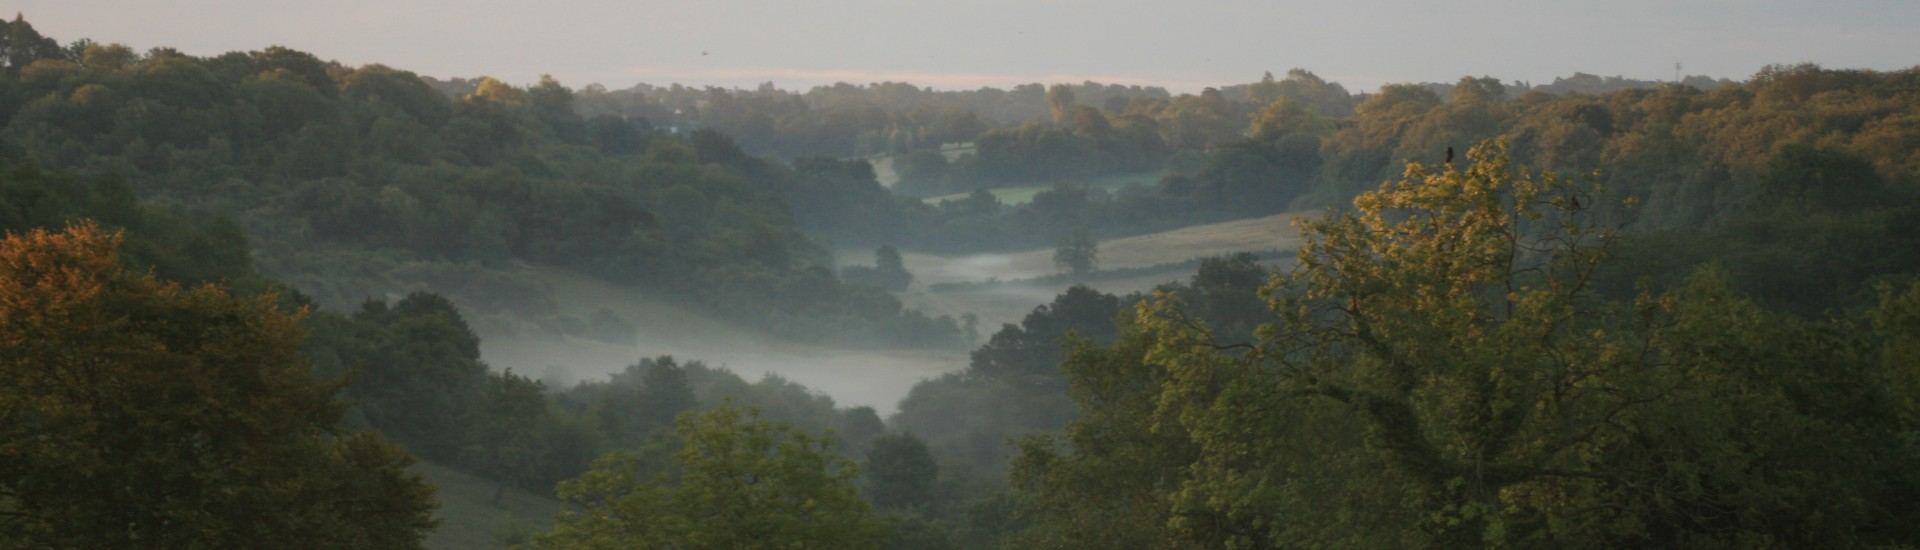 Looking into a misty Happy Valley at Dawn